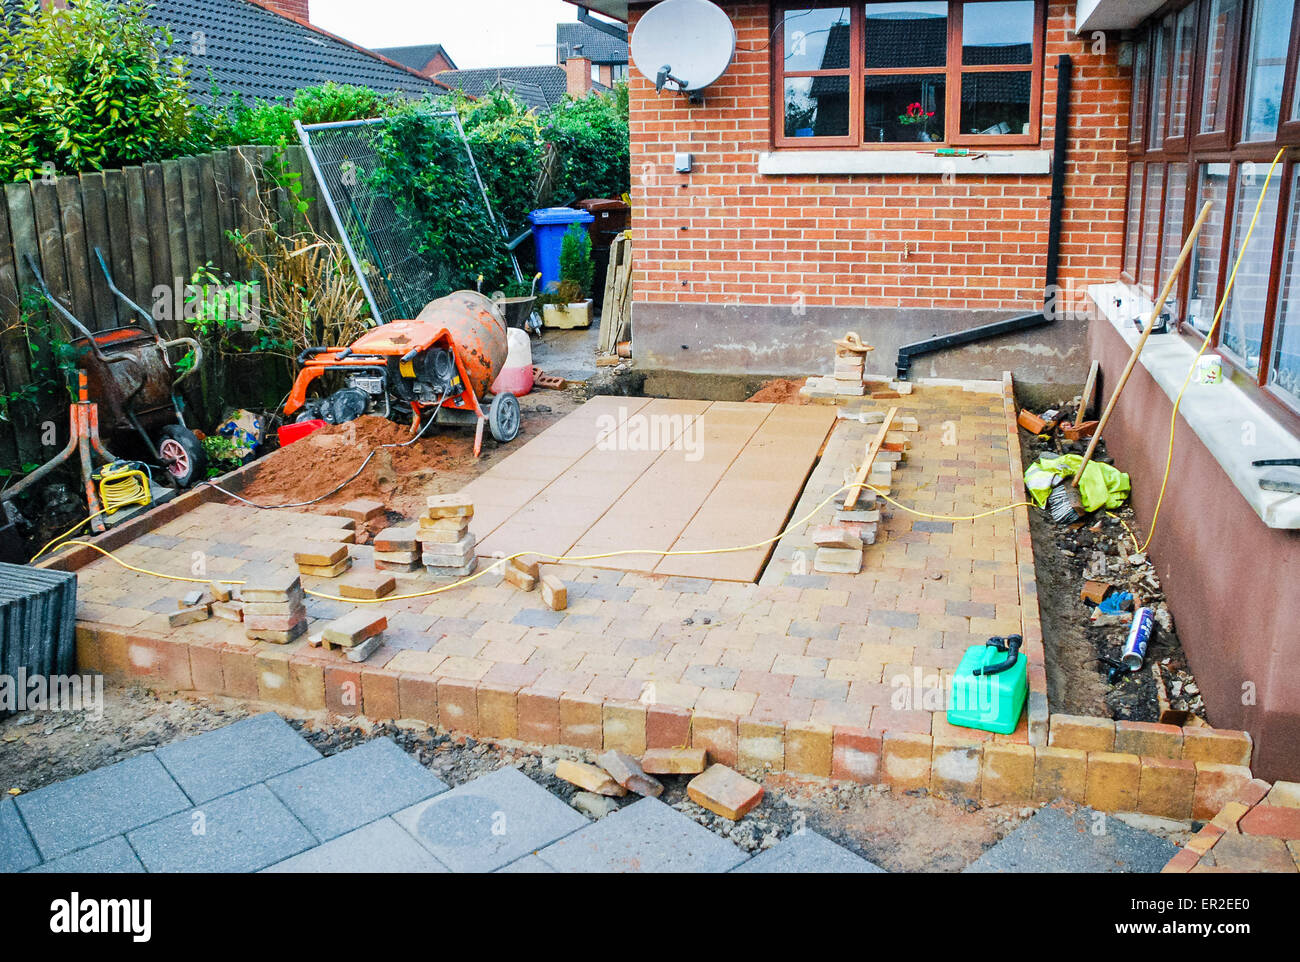 Garden patio under construction. Stock Photo